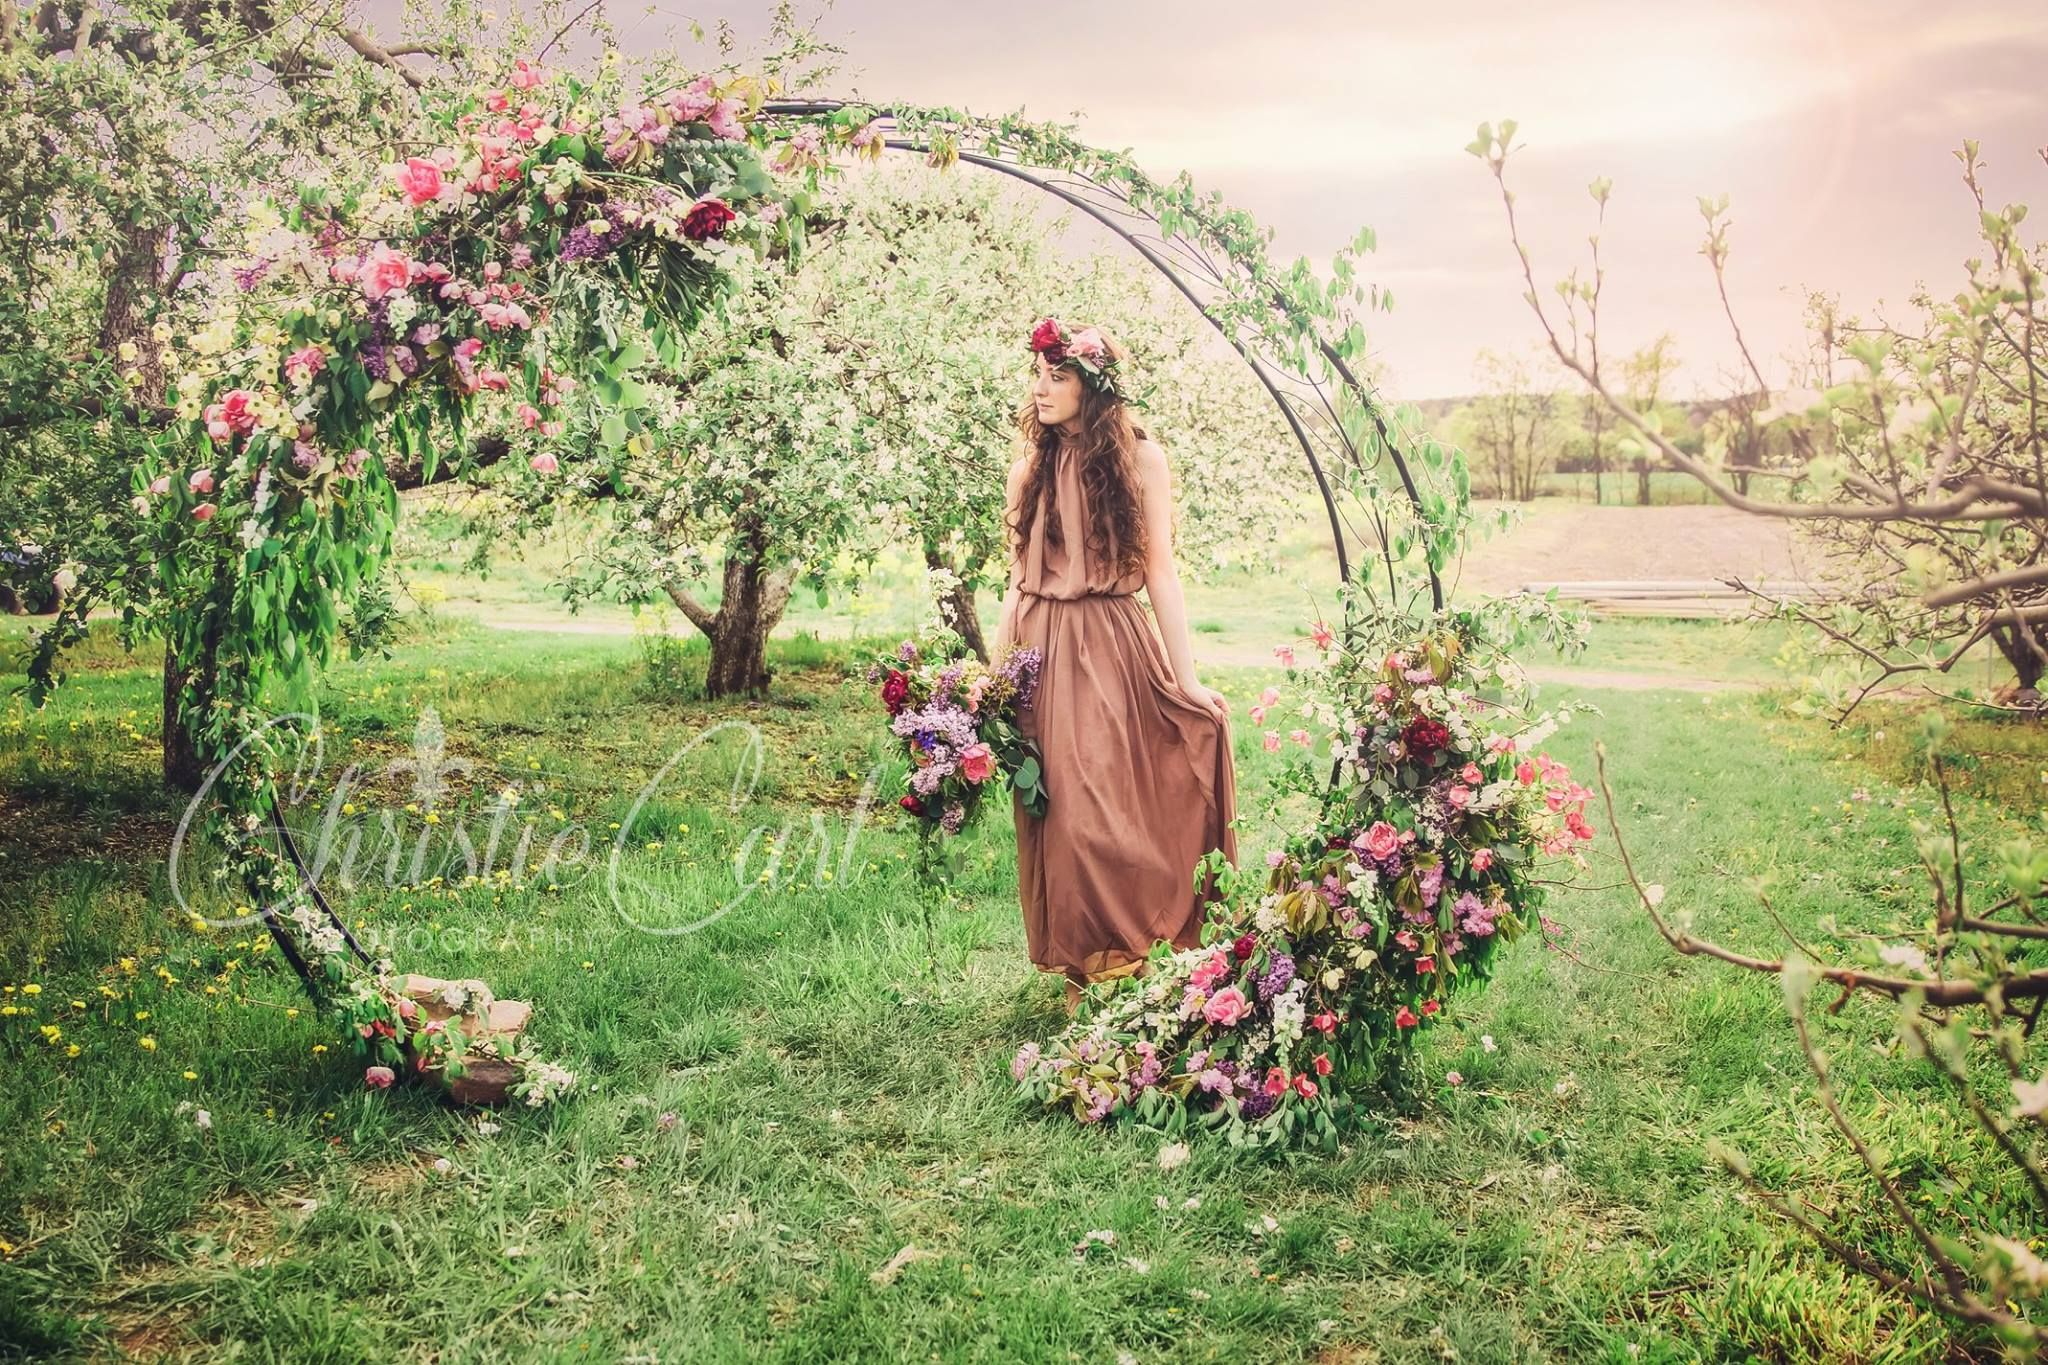 Moon Gate Arch For Wedding Rentals Floral Park Place Design Wedding Arch Rental Wedding Gate Wedding Flowers